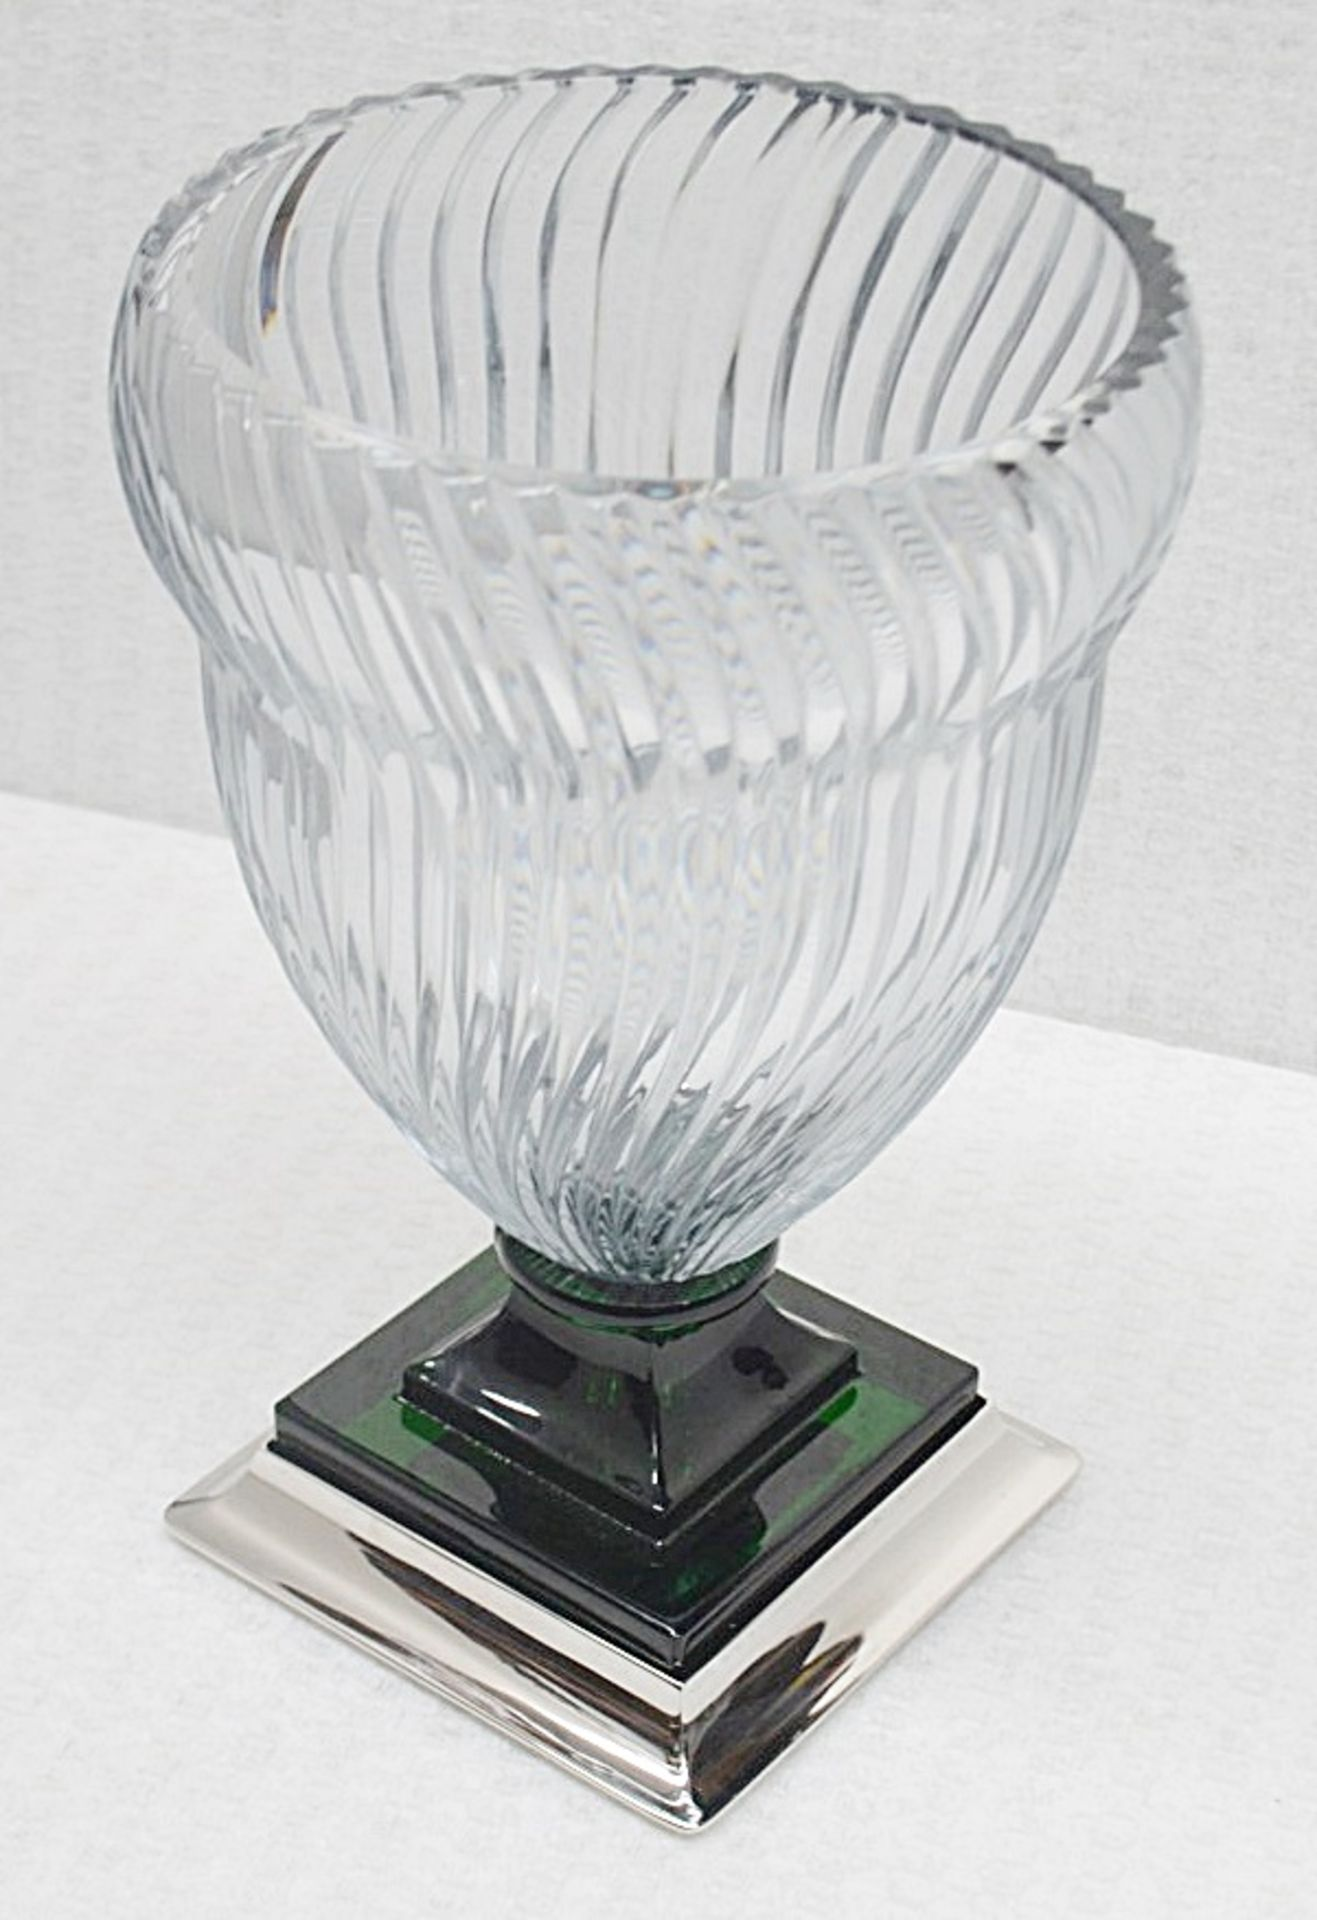 1 x BALDI 'Home Jewels' Italian Hand-crafted Artisan GHIAHDA VASE In A Green & Clear Crystal With - Image 3 of 4